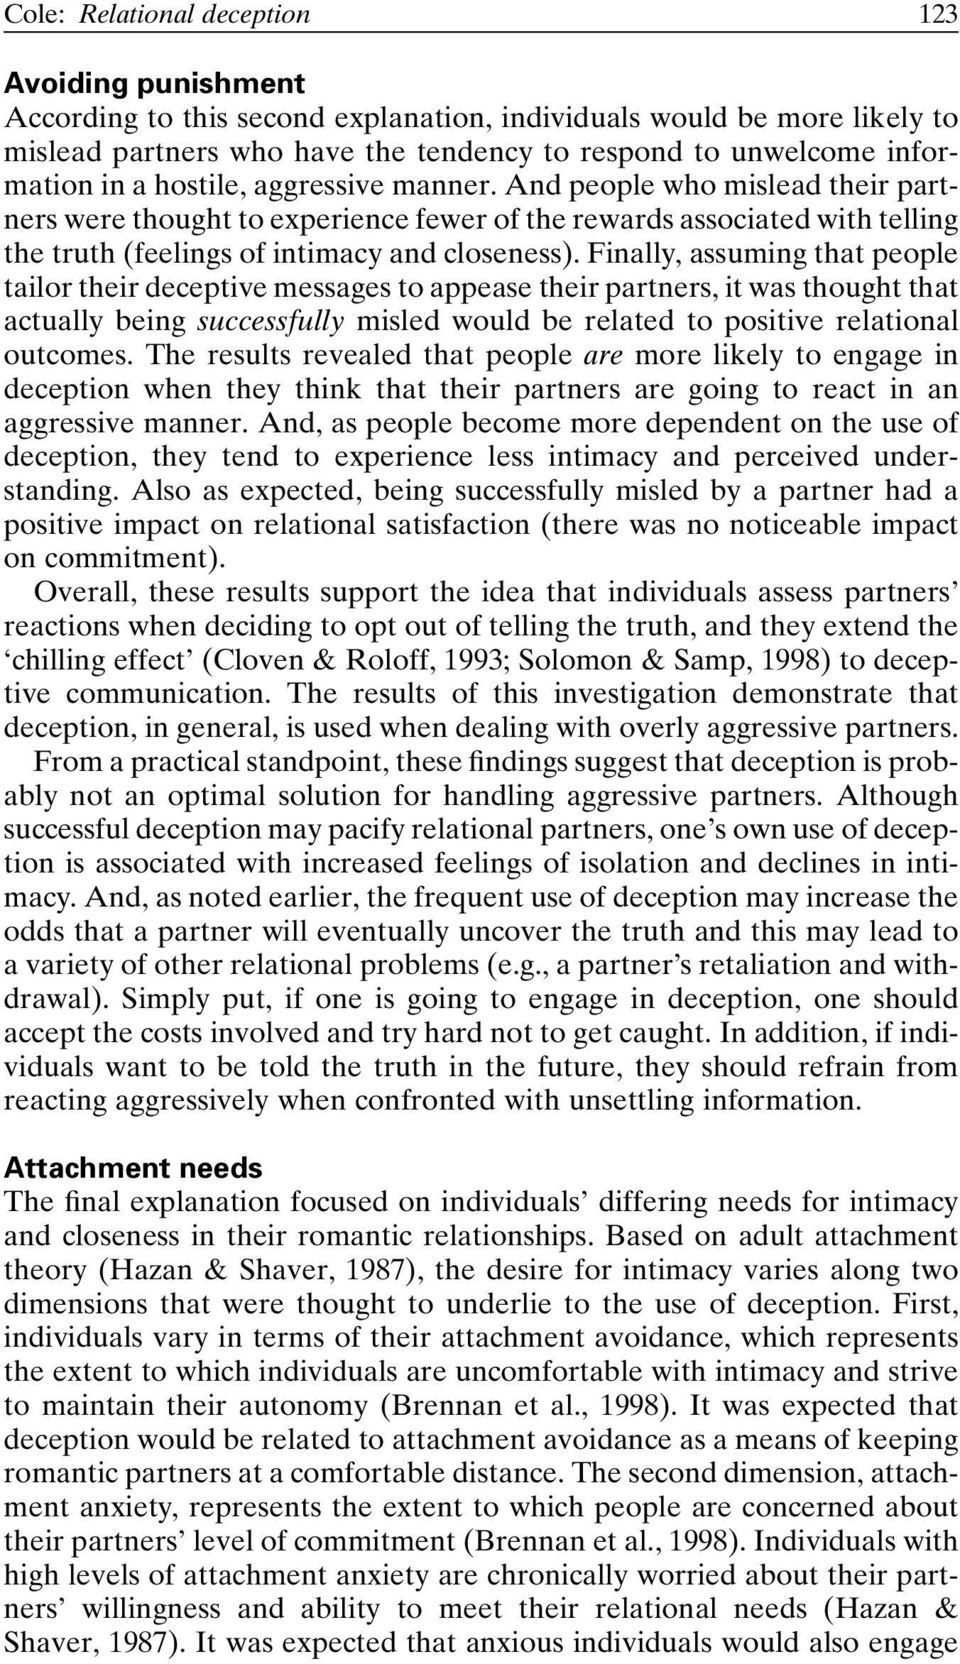 Finally, assuming that people tailor their deceptive messages to appease their partners, it was thought that actually being successfully misled would be related to positive relational outcomes.